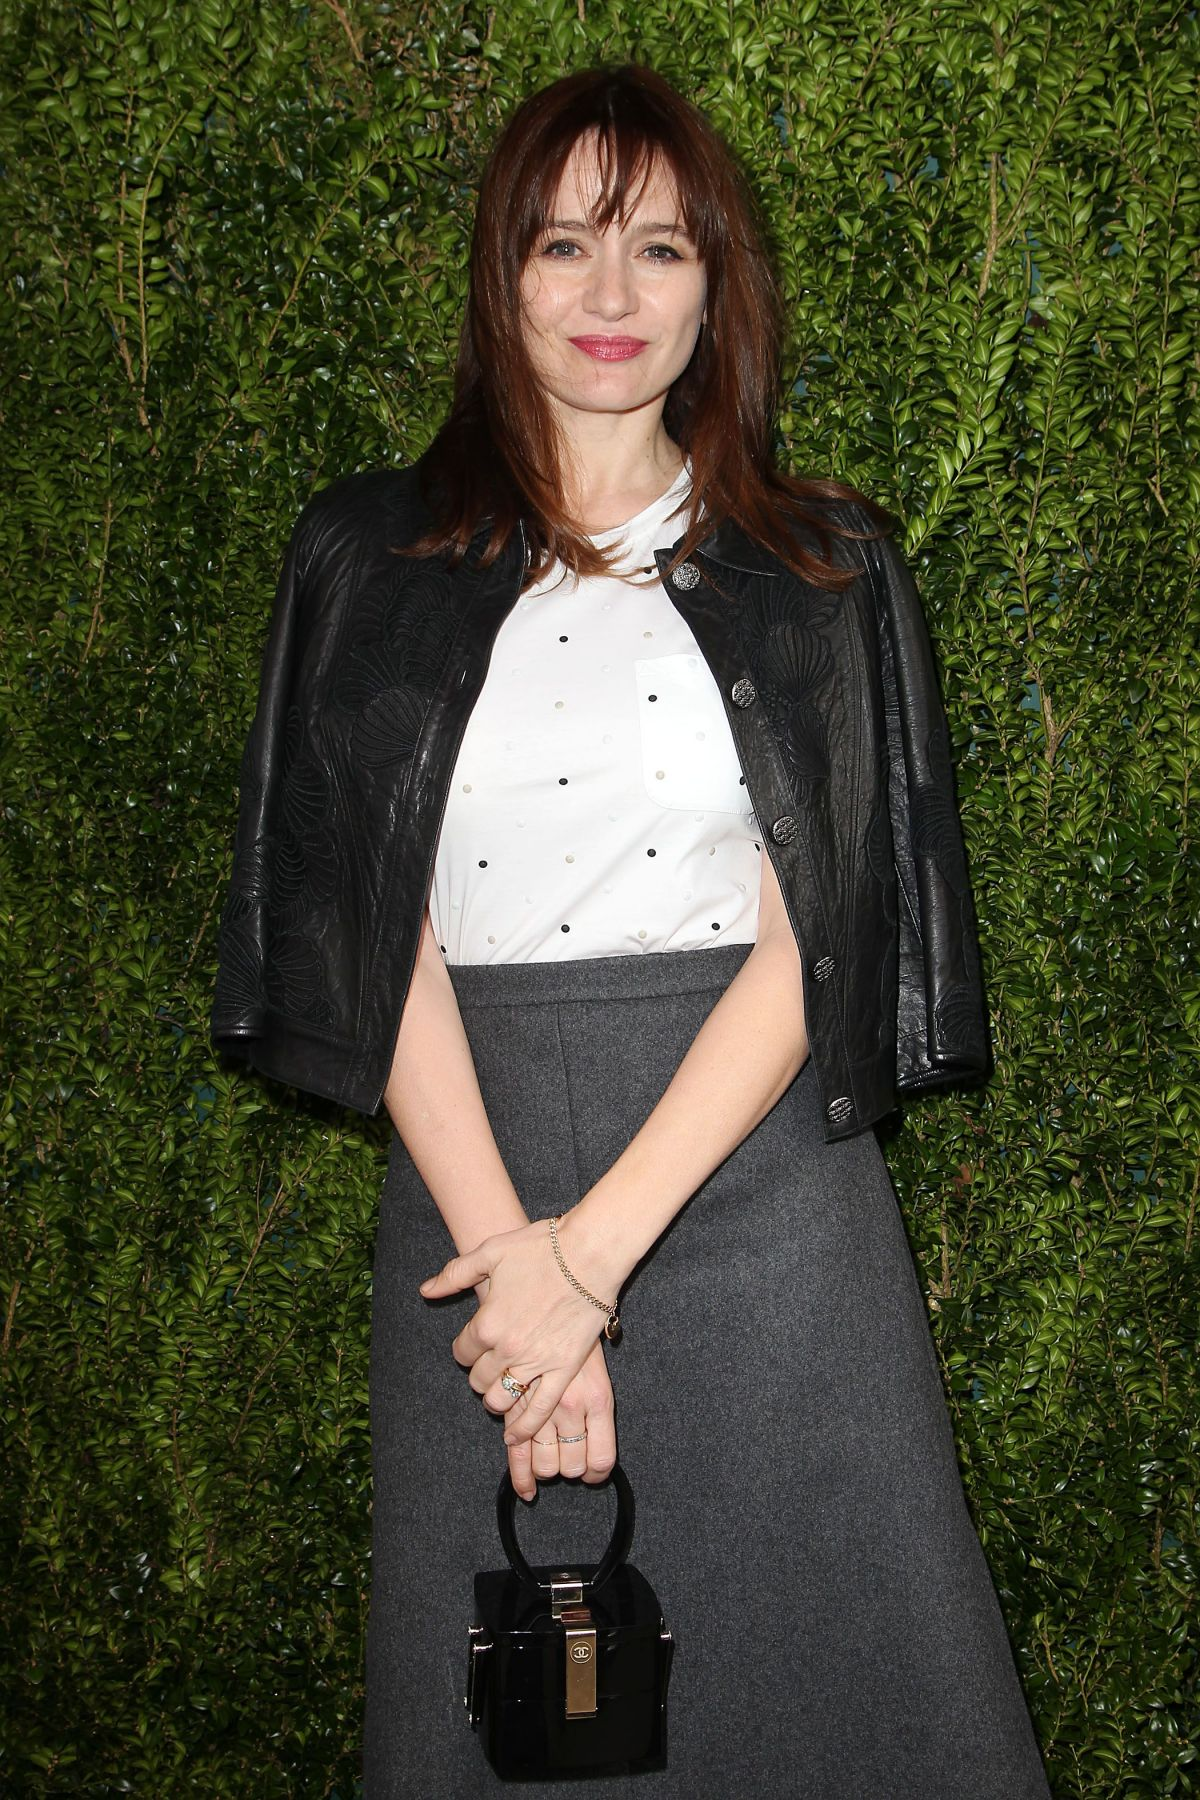 EMILY MORTIMER at Tribeca Chanel Women's Filmmaker Program Luncheon in New York 10/25/2016